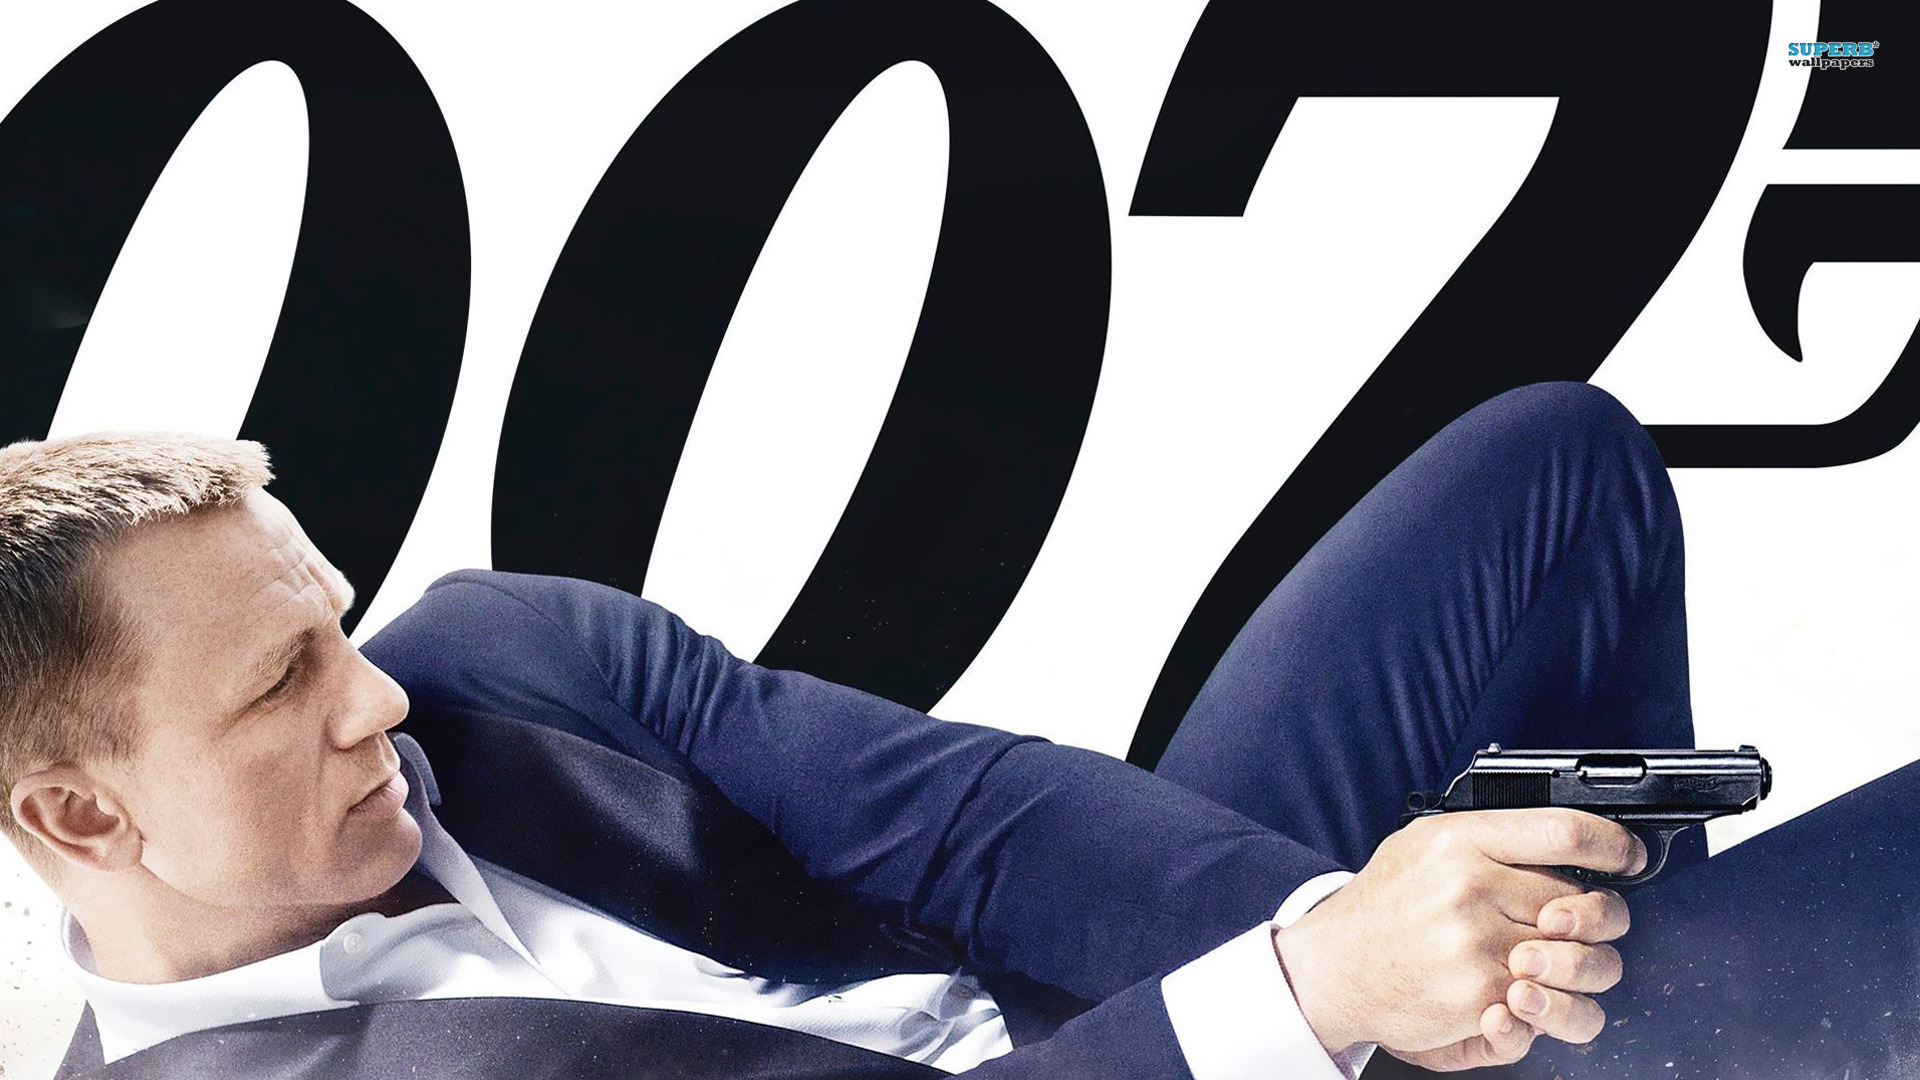 James Bond - Skyfall wallpaper 1920x1080 jpg